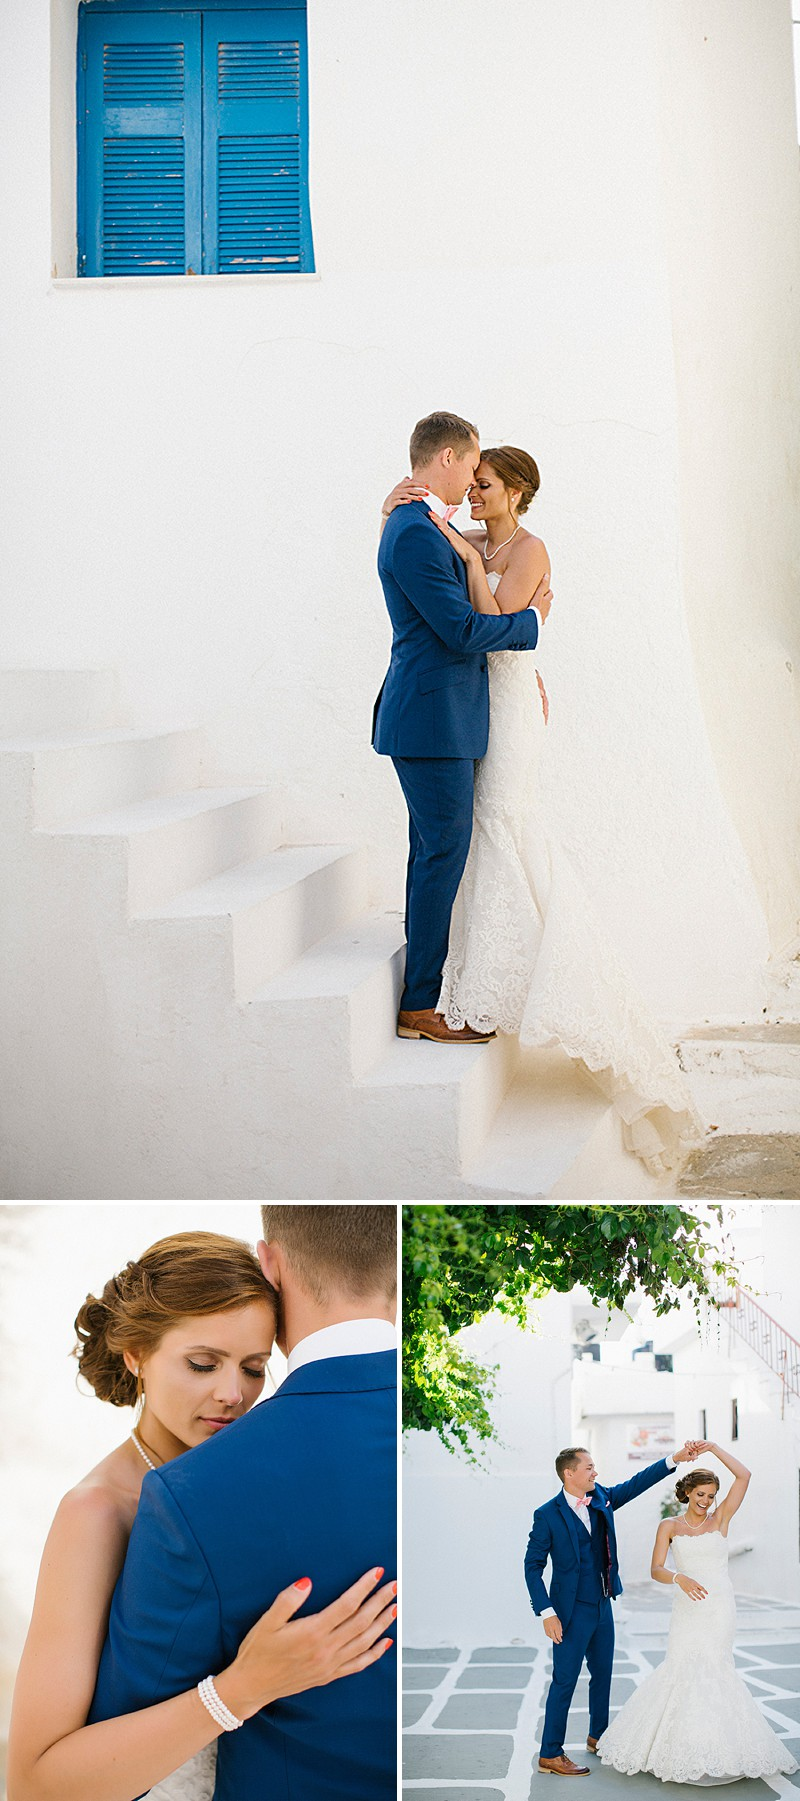 A Greek Destination Wedding On Tzamaria Beach In iOS With A Enzoani Dress And Peach Bridesmaid Dresses With Photography By Anna Roussos._0007